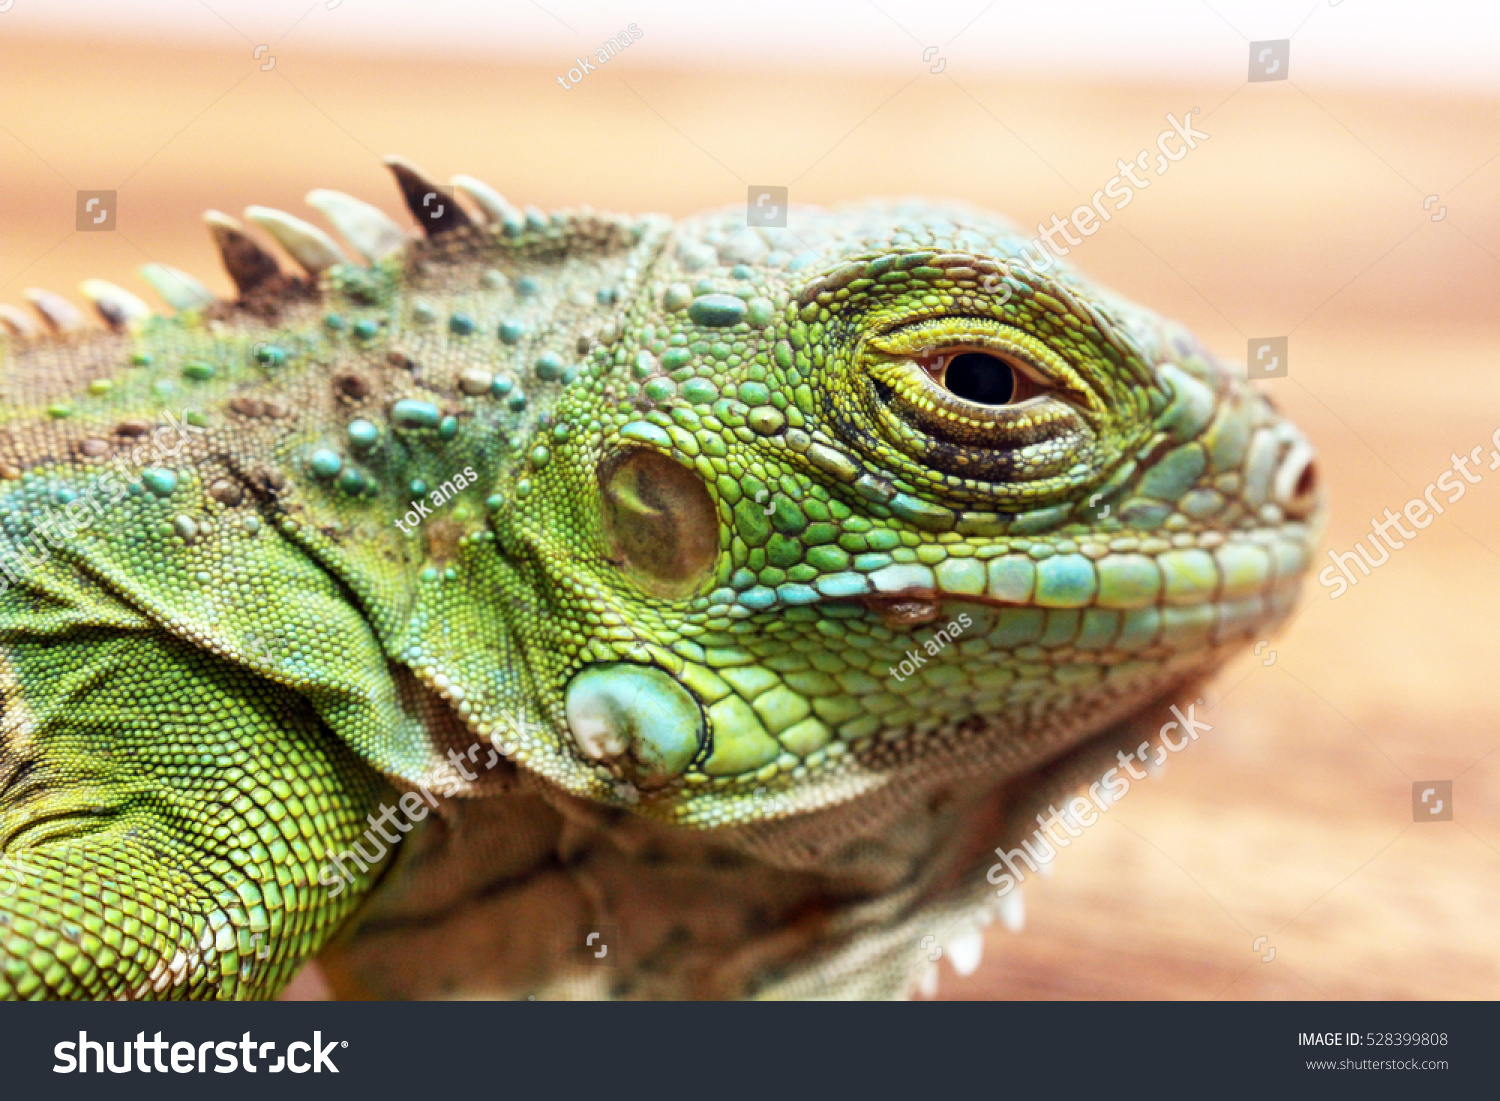 green iguana stock photo 528399808 shutterstock